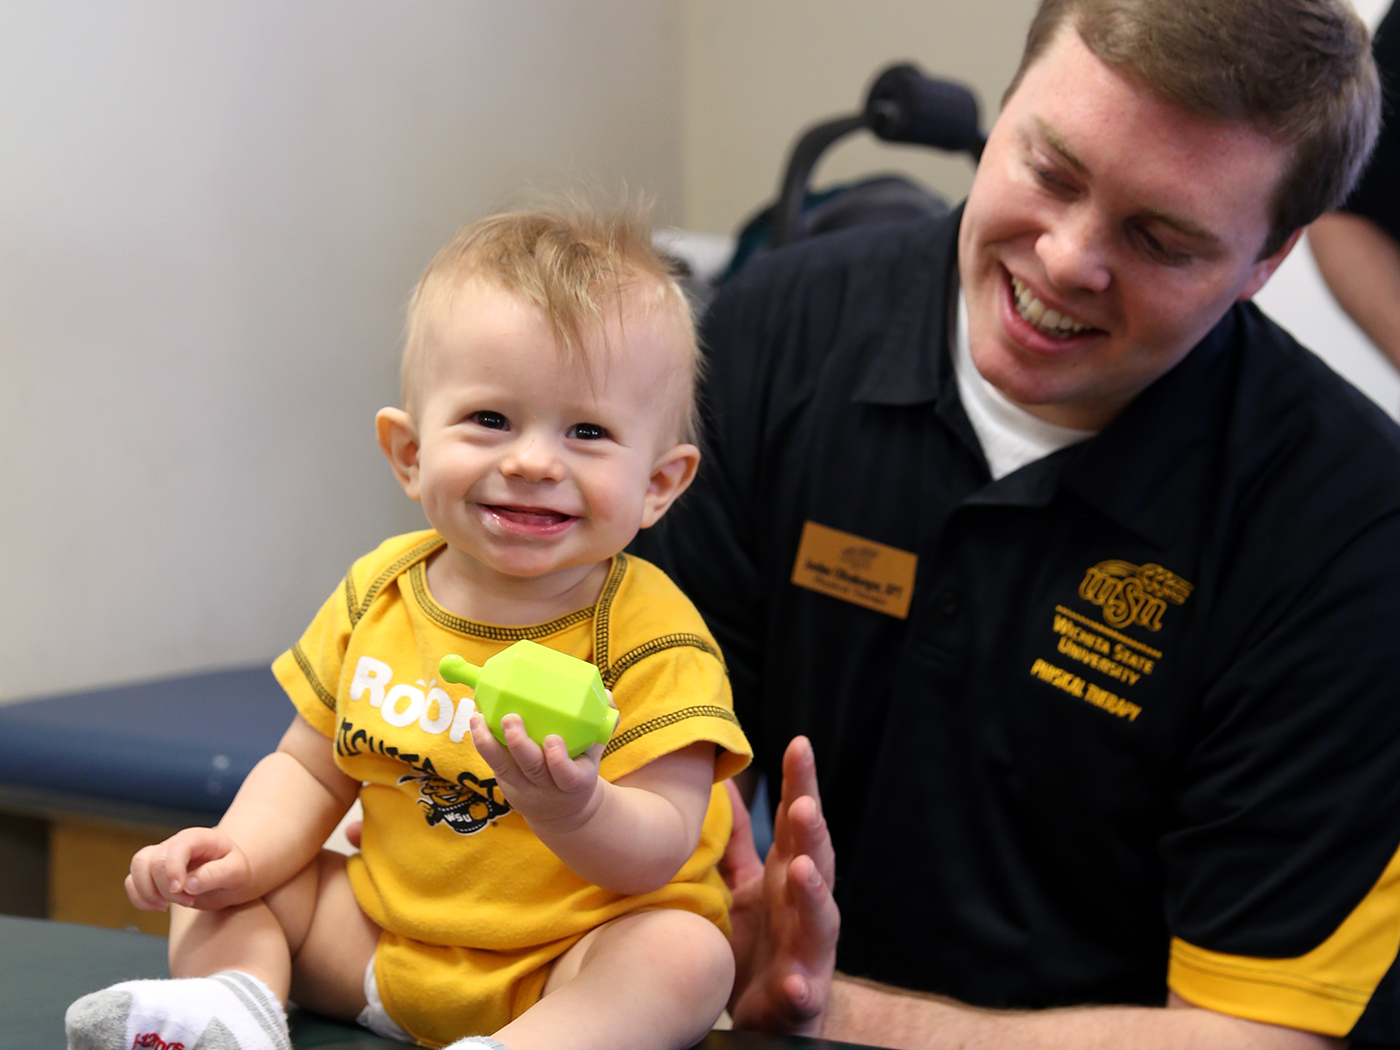 Baby smiling while playing with WSU student.